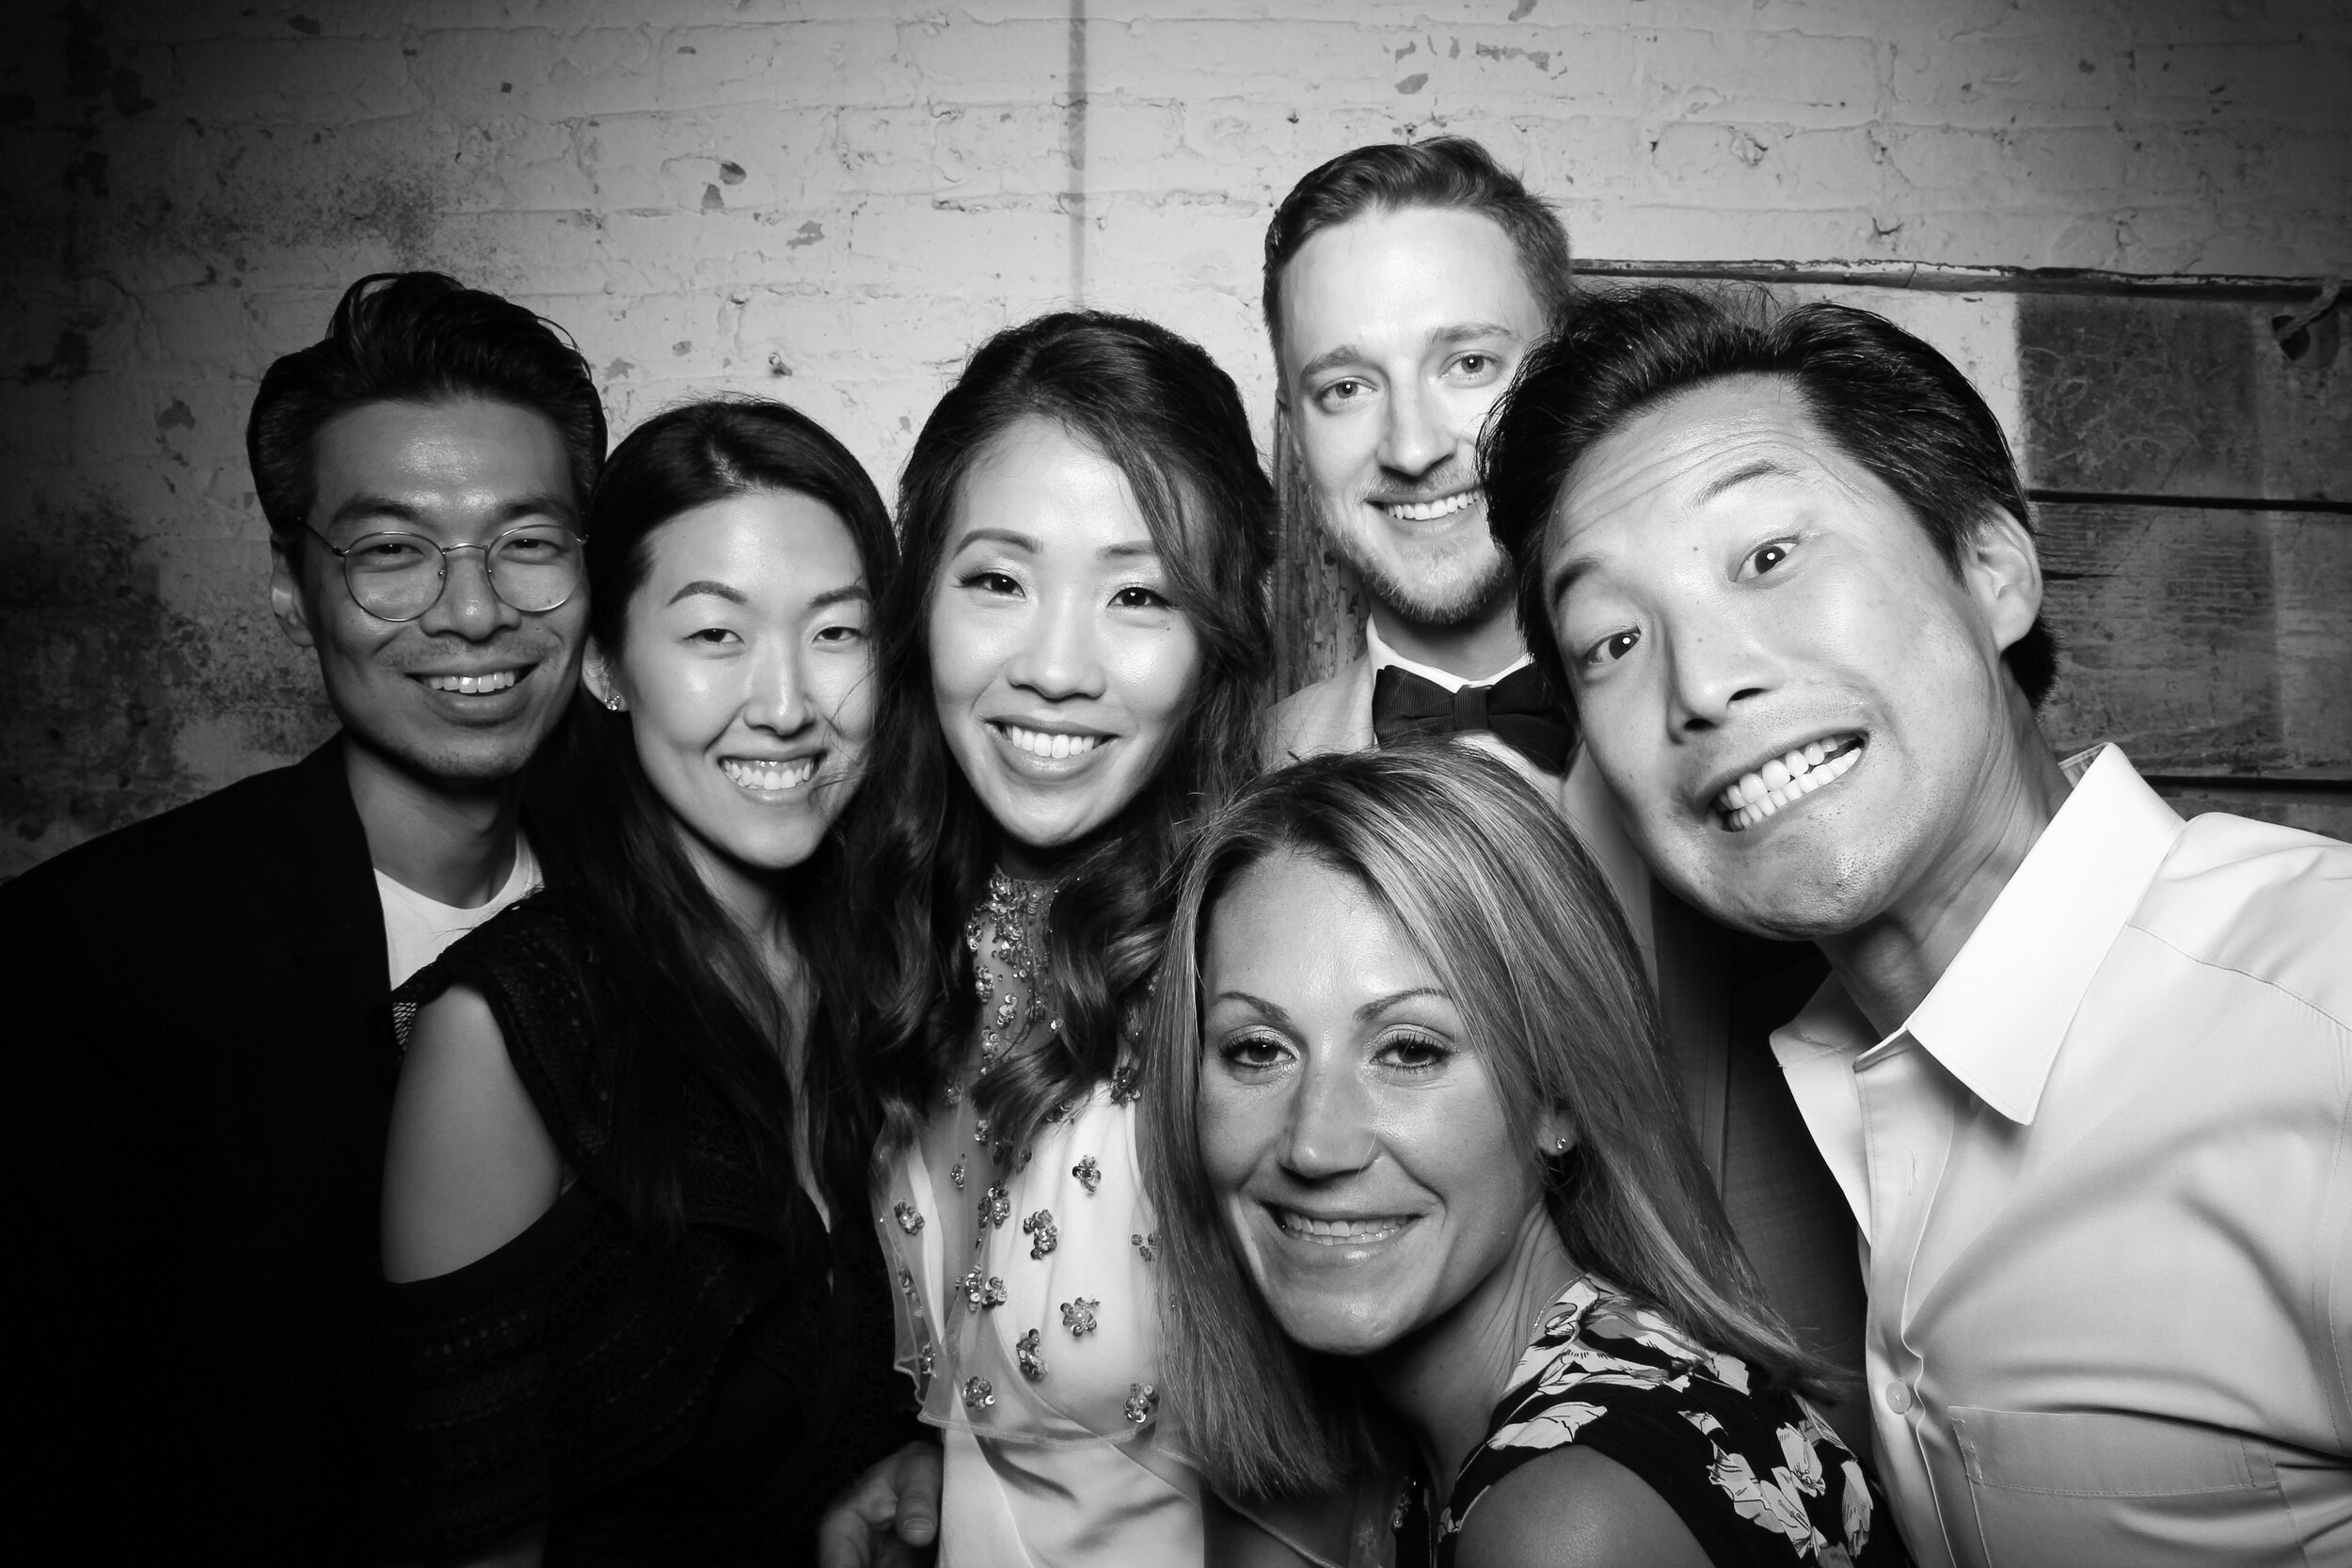 Chicago_Vintage_Wedding_Photobooth_Joinery_12.jpg